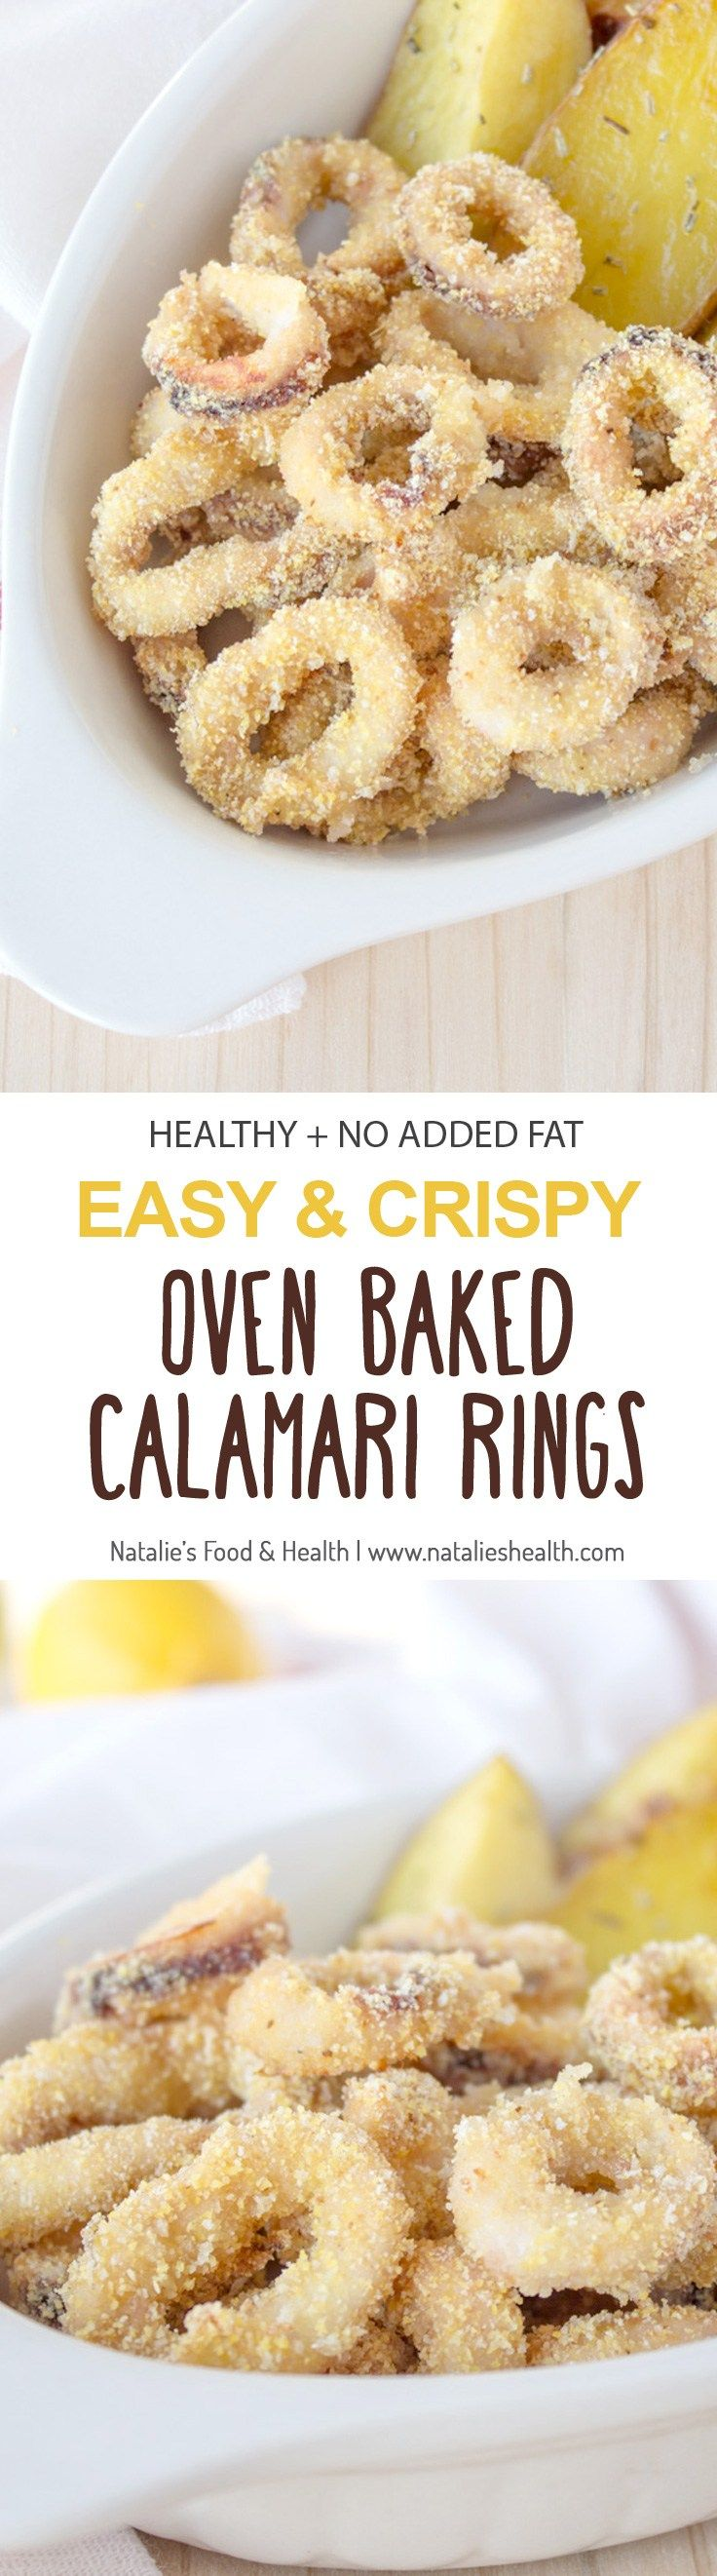 Crispy Oven Baked Calamari Rings prepared without added fat. Easy, simple and healthy seafood meal for the whole family. CLICK to read the recipe or PIN for later! #seafood #holiday #healthy #easy